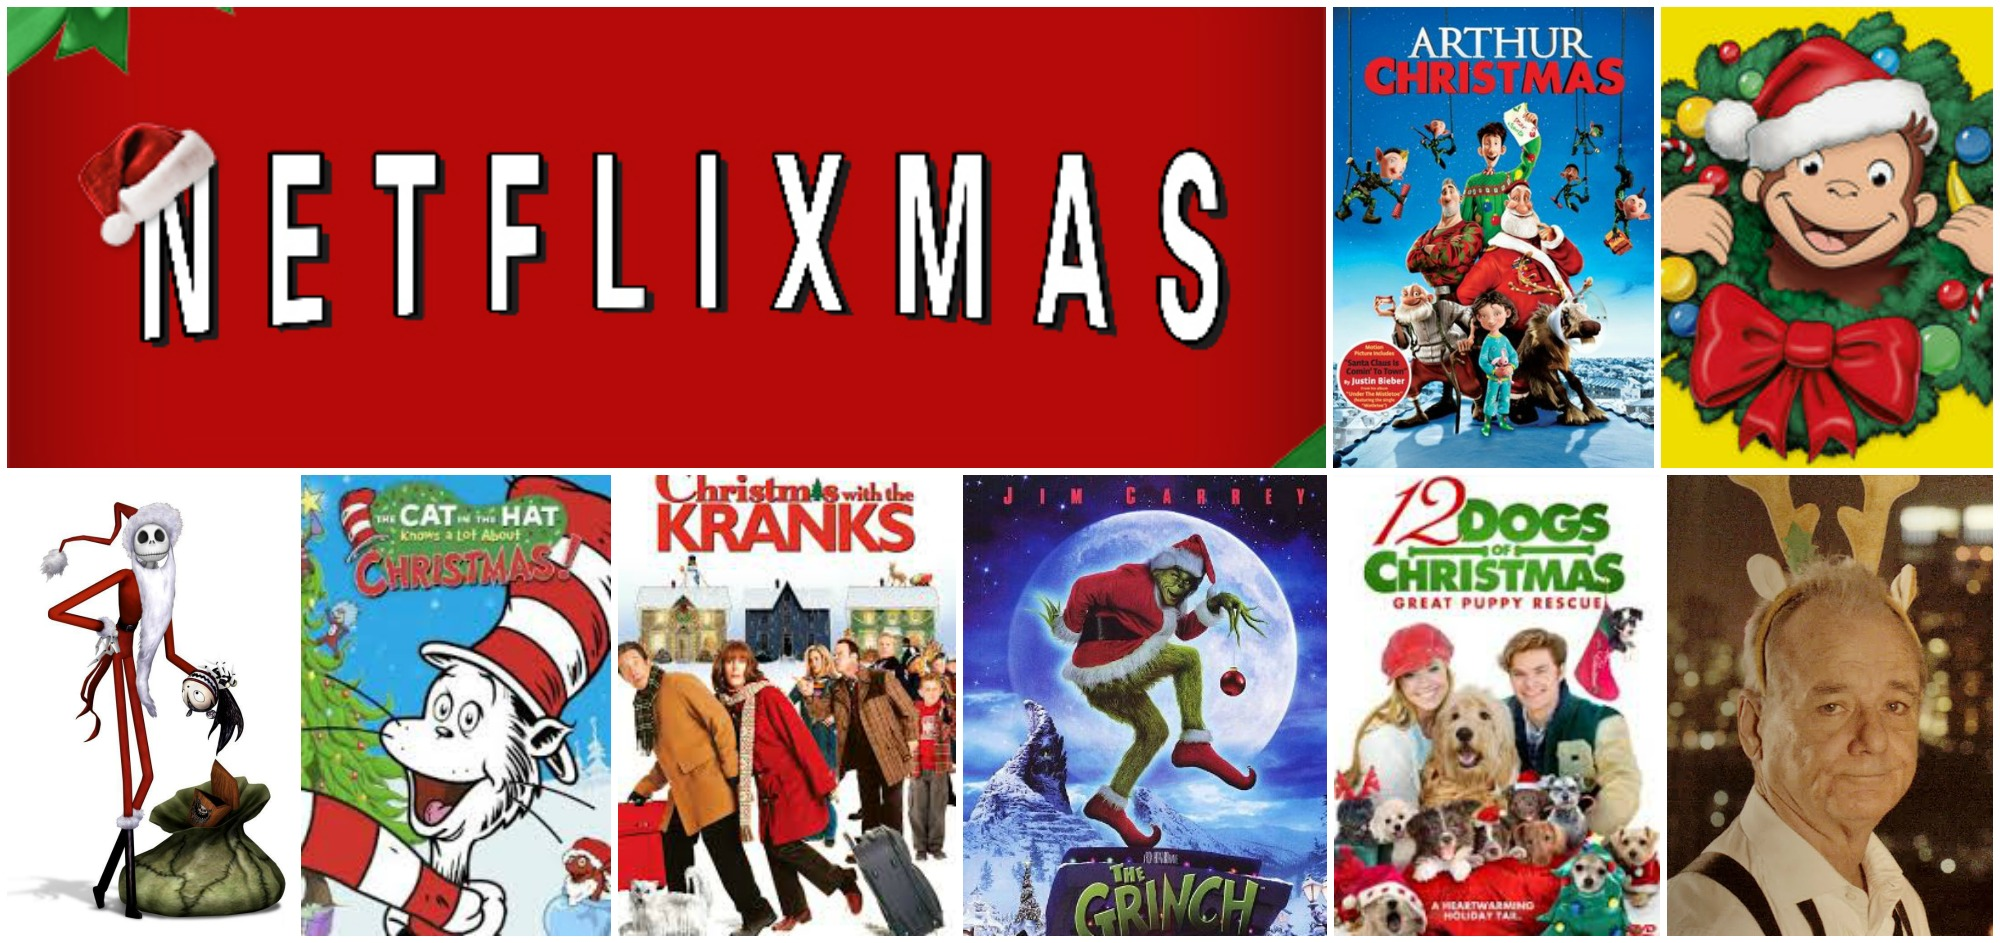 Merry Netflixmas The Best Christmas Shows On Netflix Canada This Year